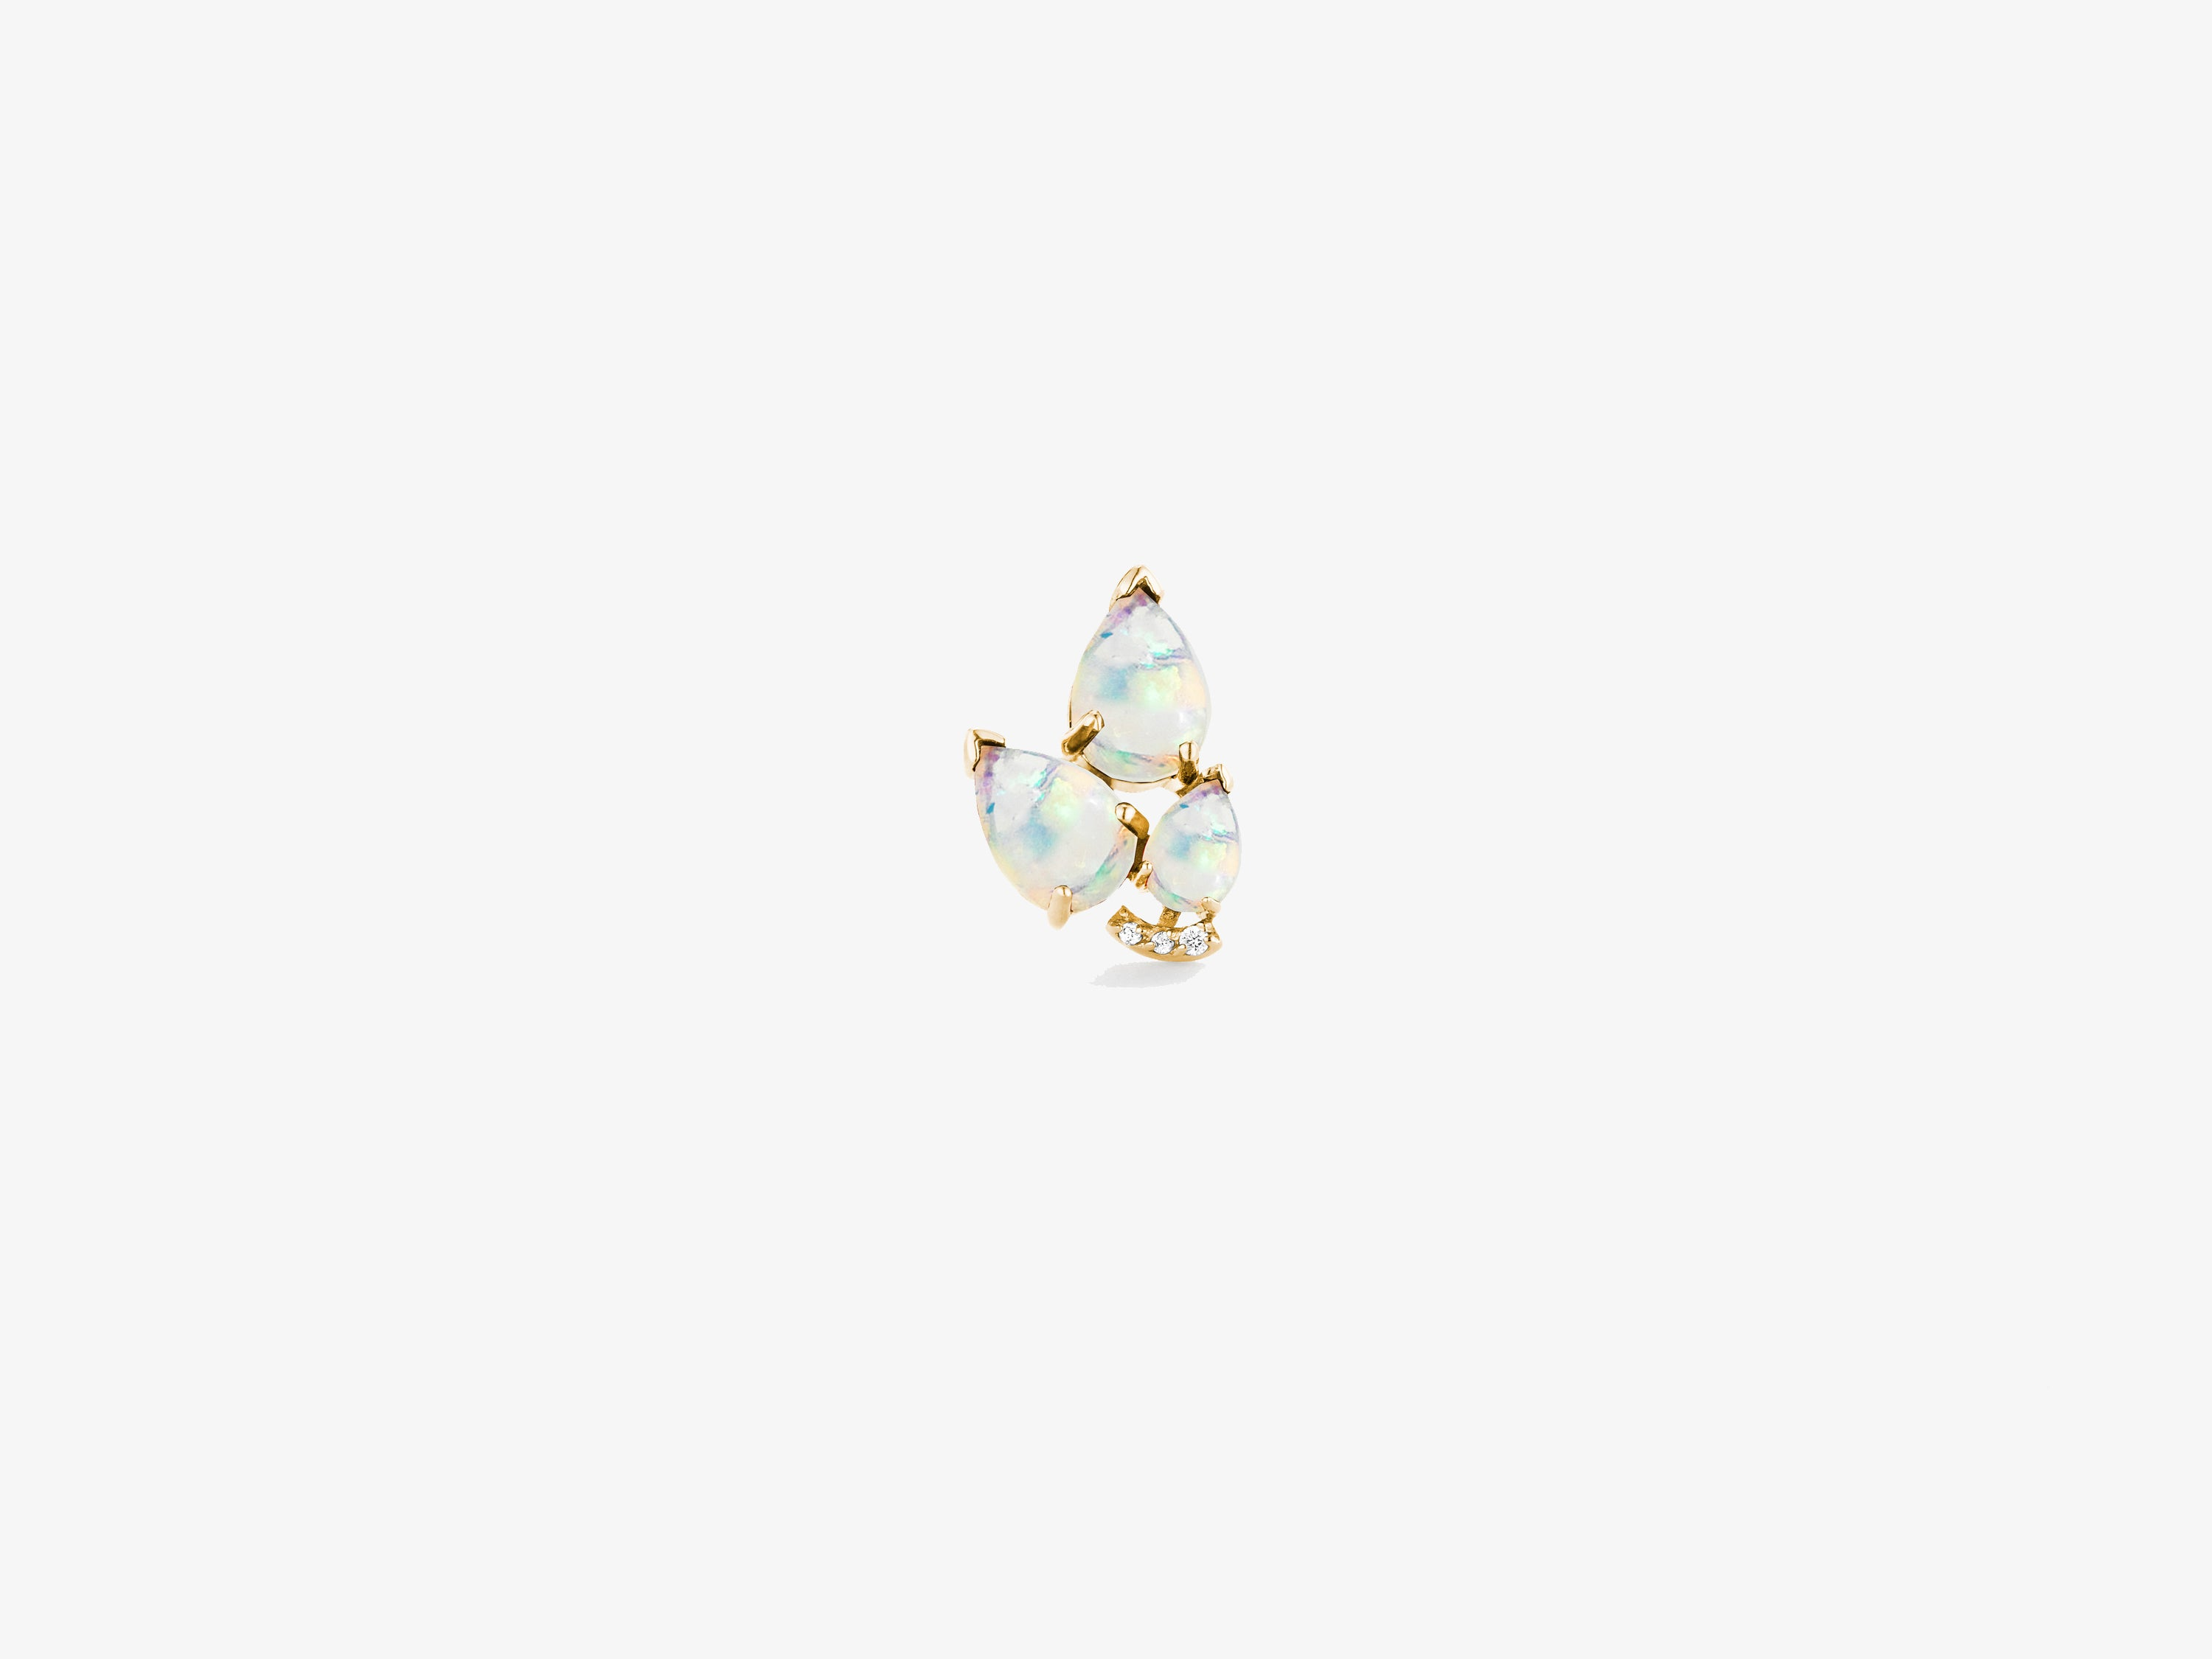 Small Pear Shaped Gemstone Cluster Stud with Curved Diamond Bar